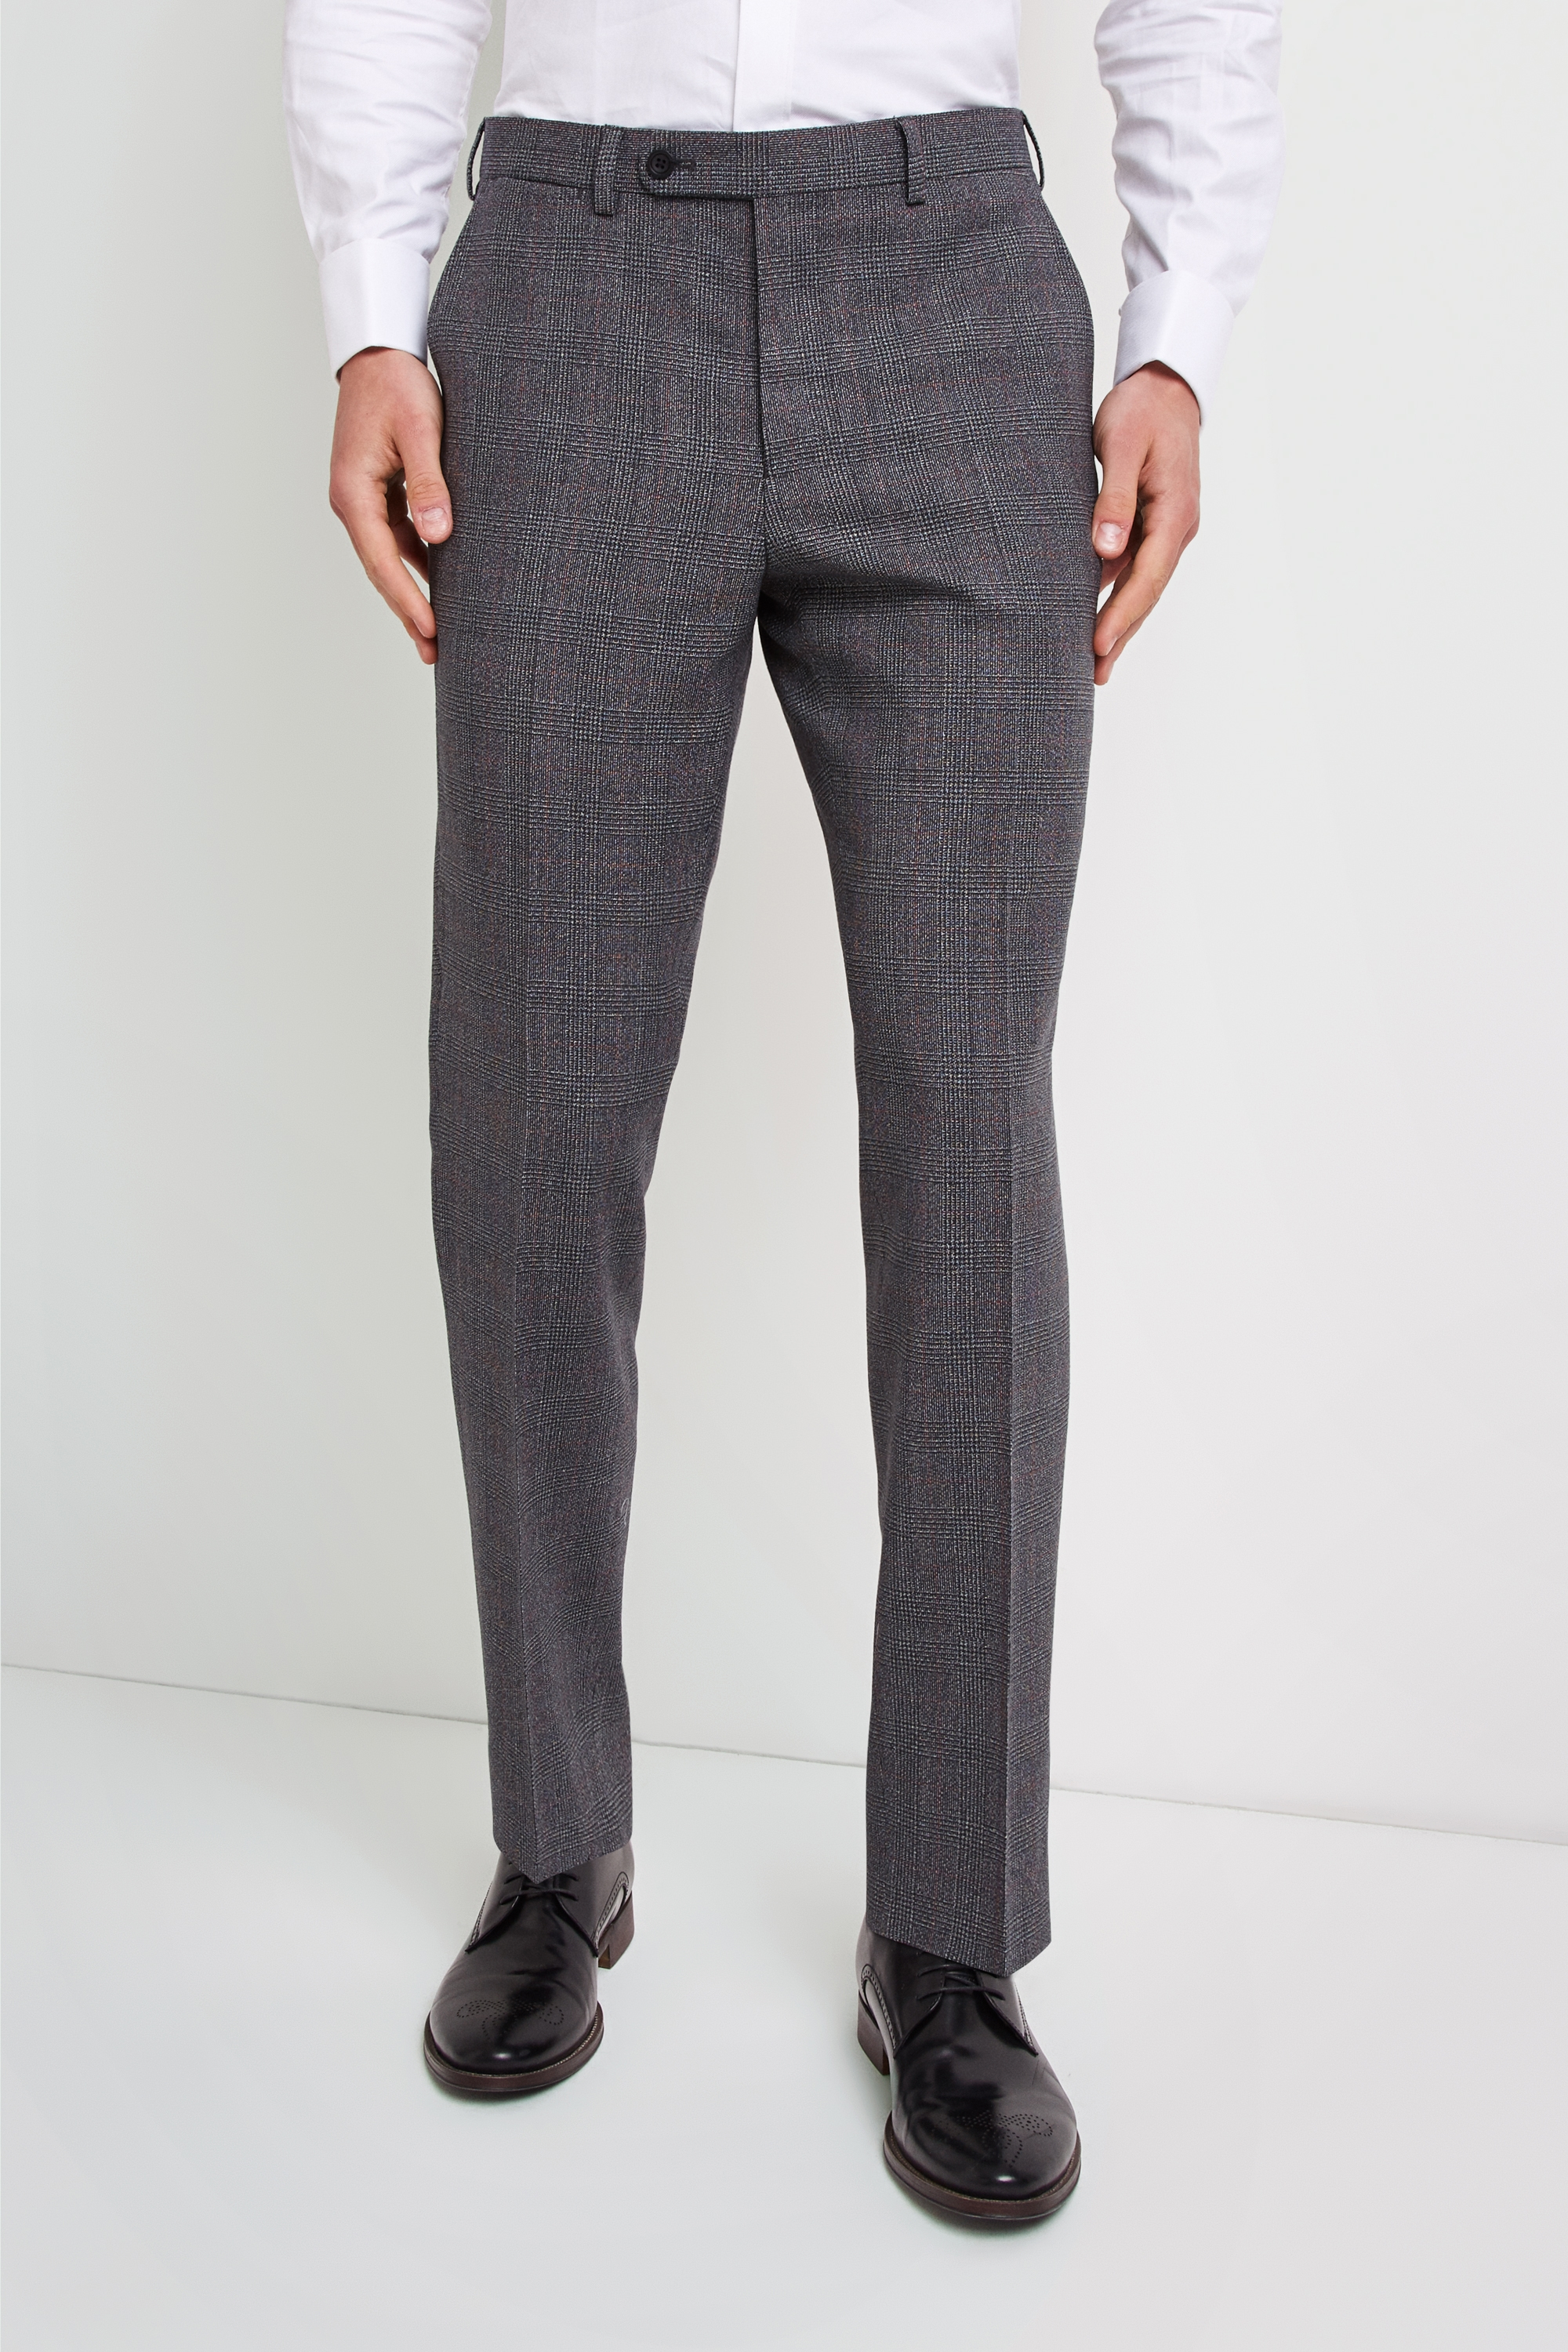 e6787edc4e94 Ermenegildo Zegna Cloth Tailored Fit Grey with Red Check Trousers